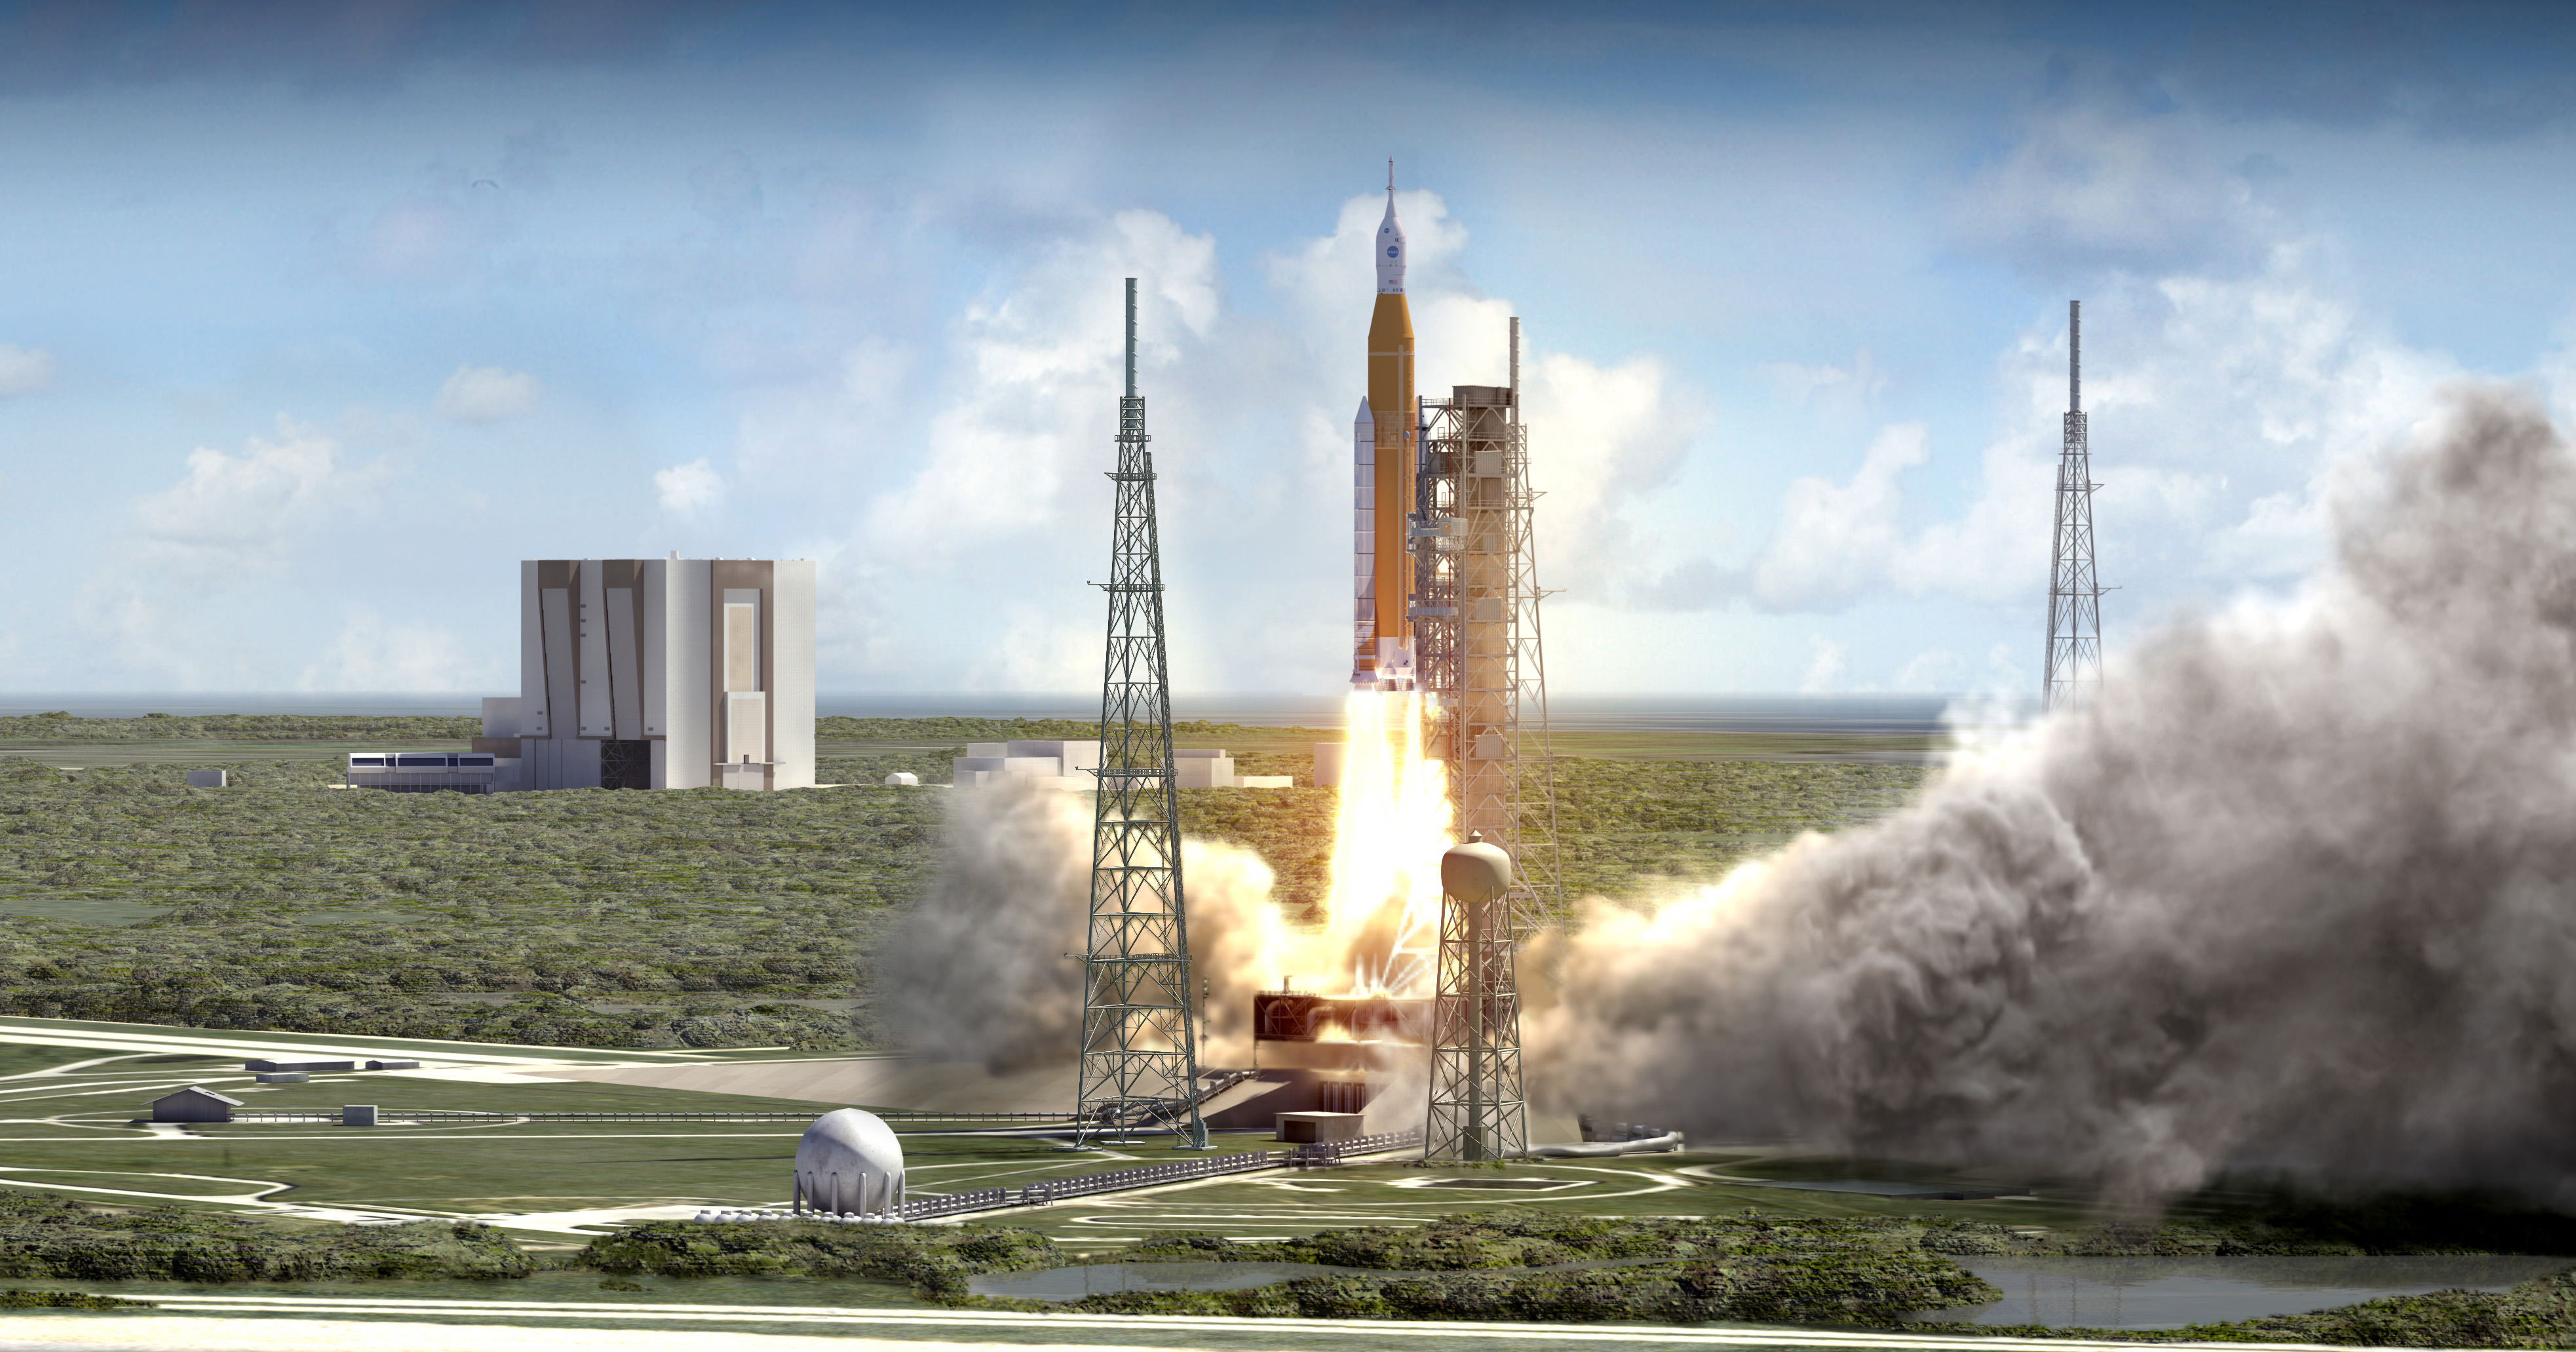 NASA's Space Launch System (SLS) blasts off from launch pad 39B at the Kennedy Space Center in this artist rendering showing a view of the liftoff of the Block 1 70-metric-ton (77-ton) crew vehicle configuration.   Credit: NASA/MSFC